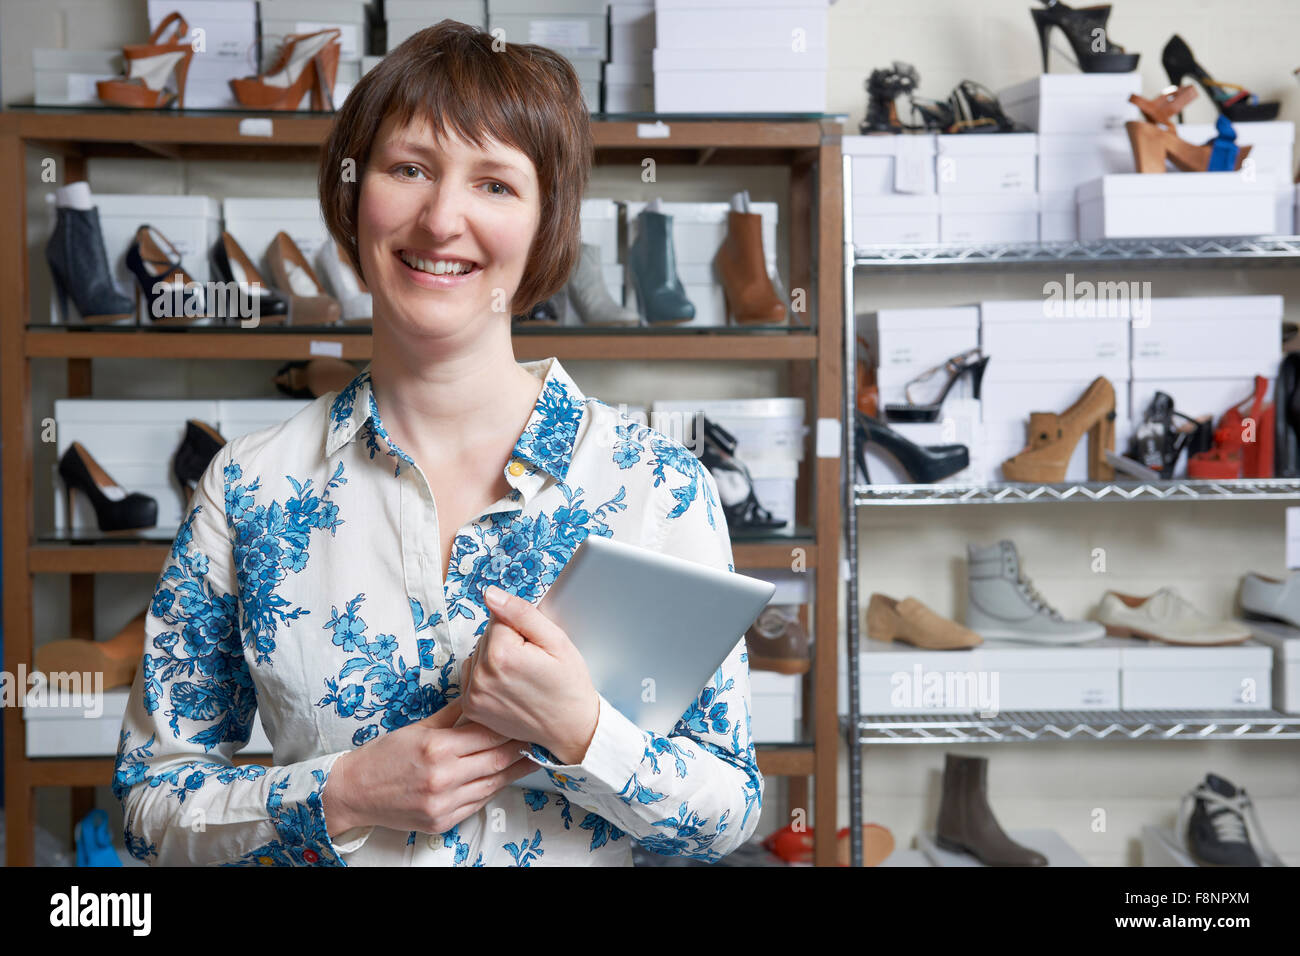 Owner Of Online Shoe Business Using Digital Tablet - Stock Image